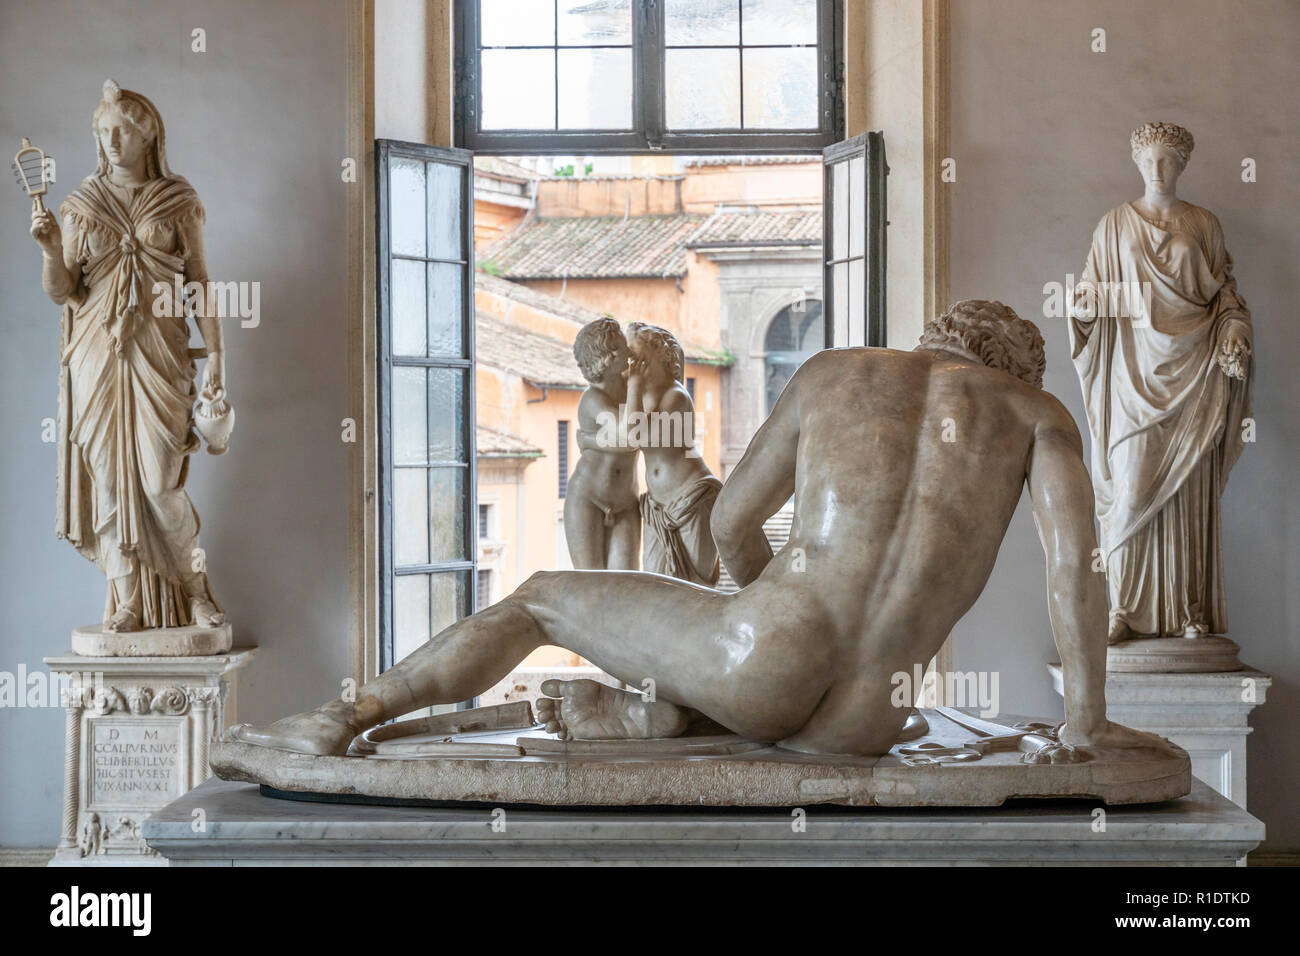 The Hall of the Galatian with the sculpture of the Dying Galatian, a room  in the Palazzo Nuovo, part of the Capitoline Museums,   Rome, Italy. - Stock Image